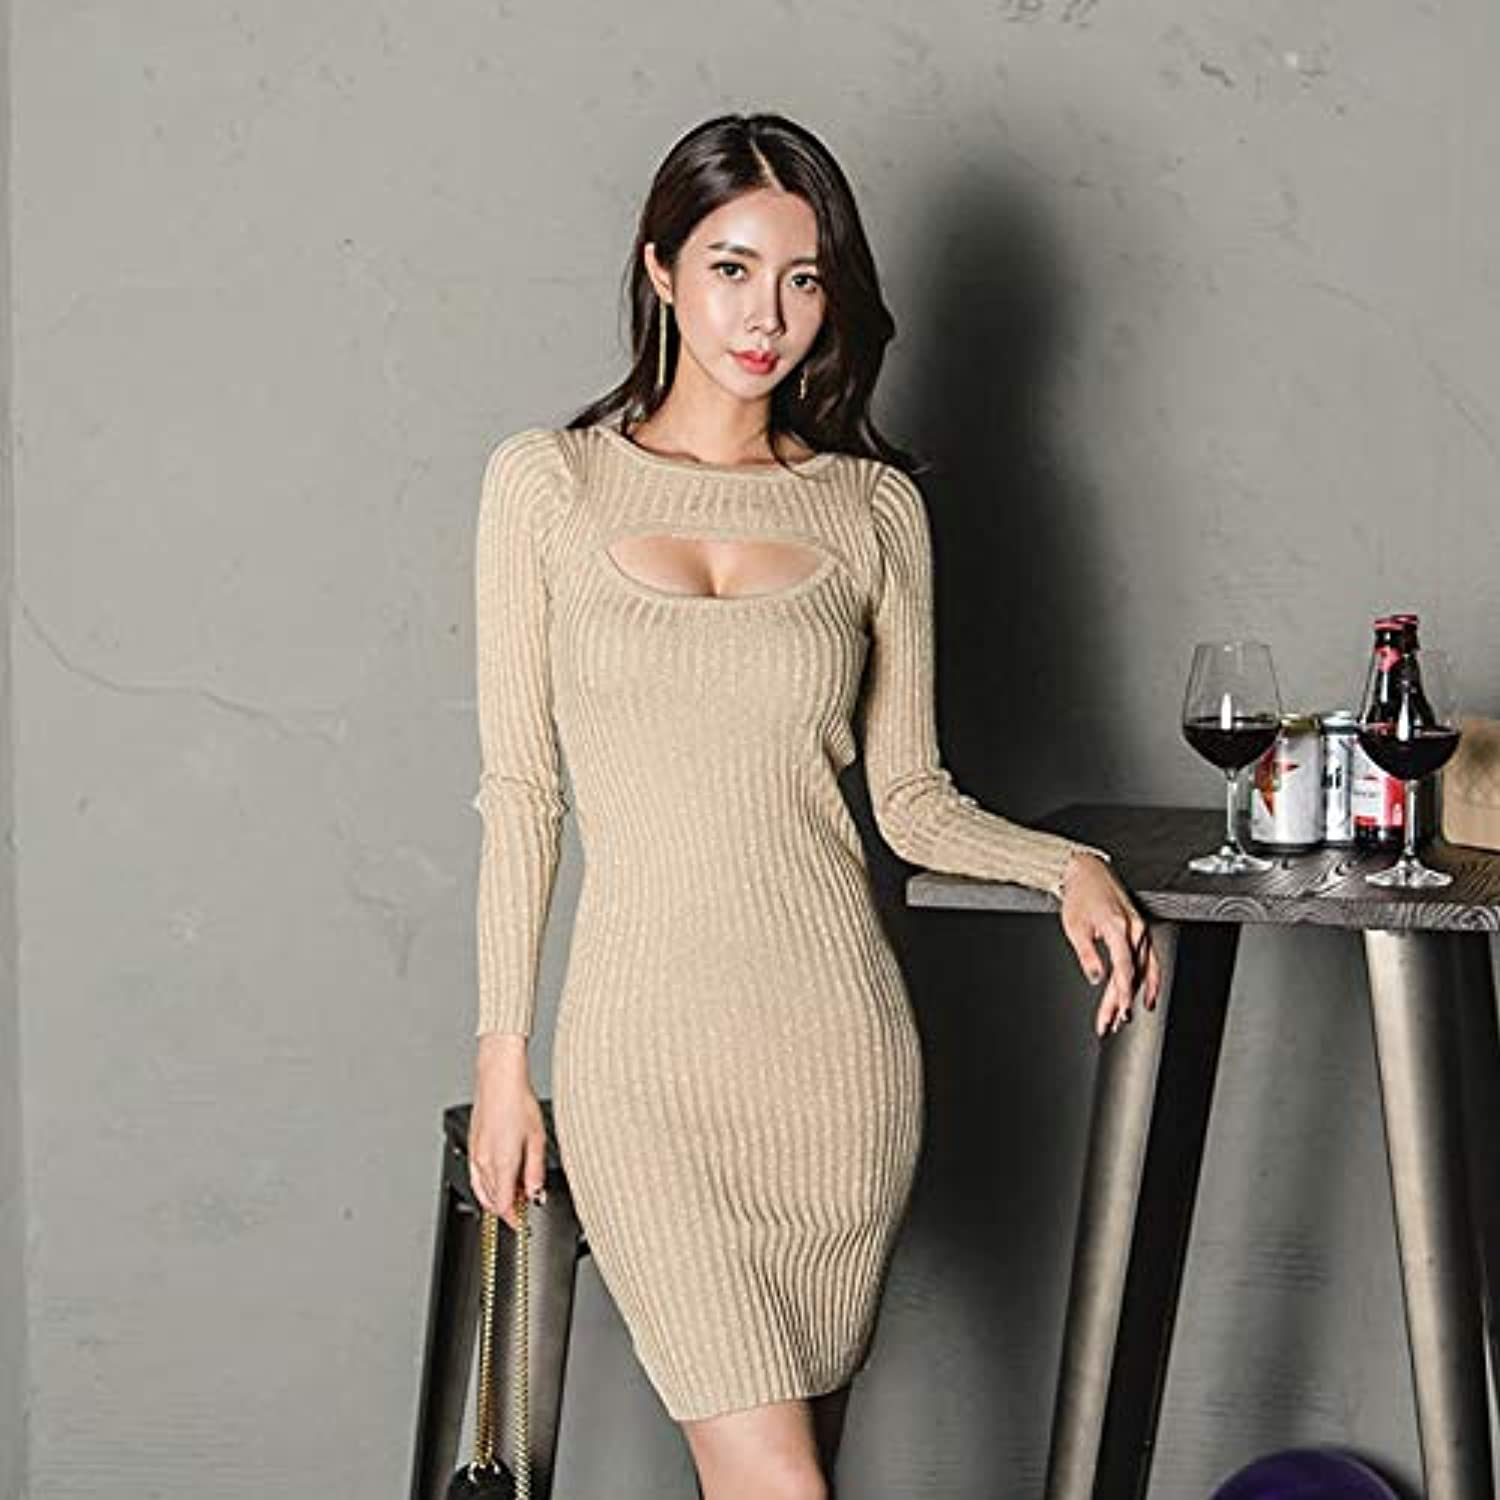 Cxlyq Dresses HollowOut Mini Women Sweater Dress Casual ONeck Skinny Hip Package Female Vestidos Autumn Elastic Knitted Dress